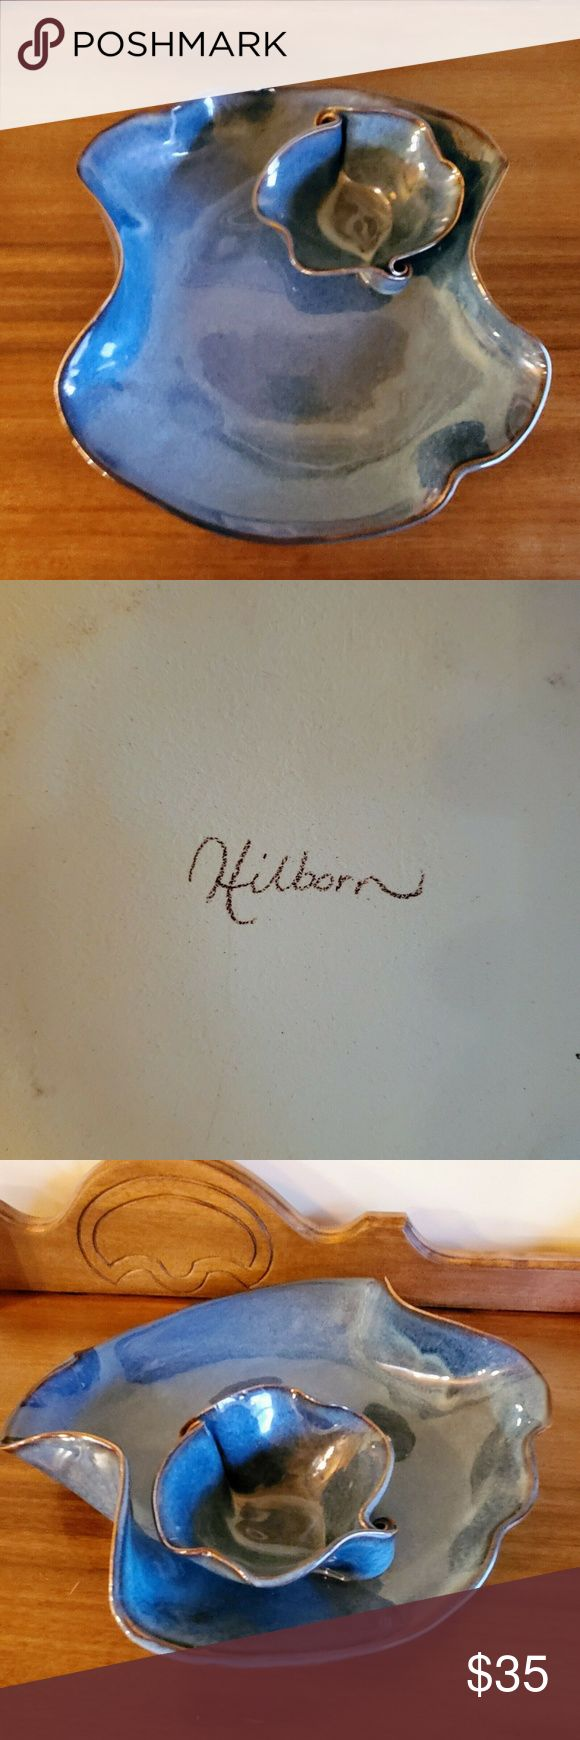 Hilborn Canadian Pottery Large Dip Bowl Up for sale is an